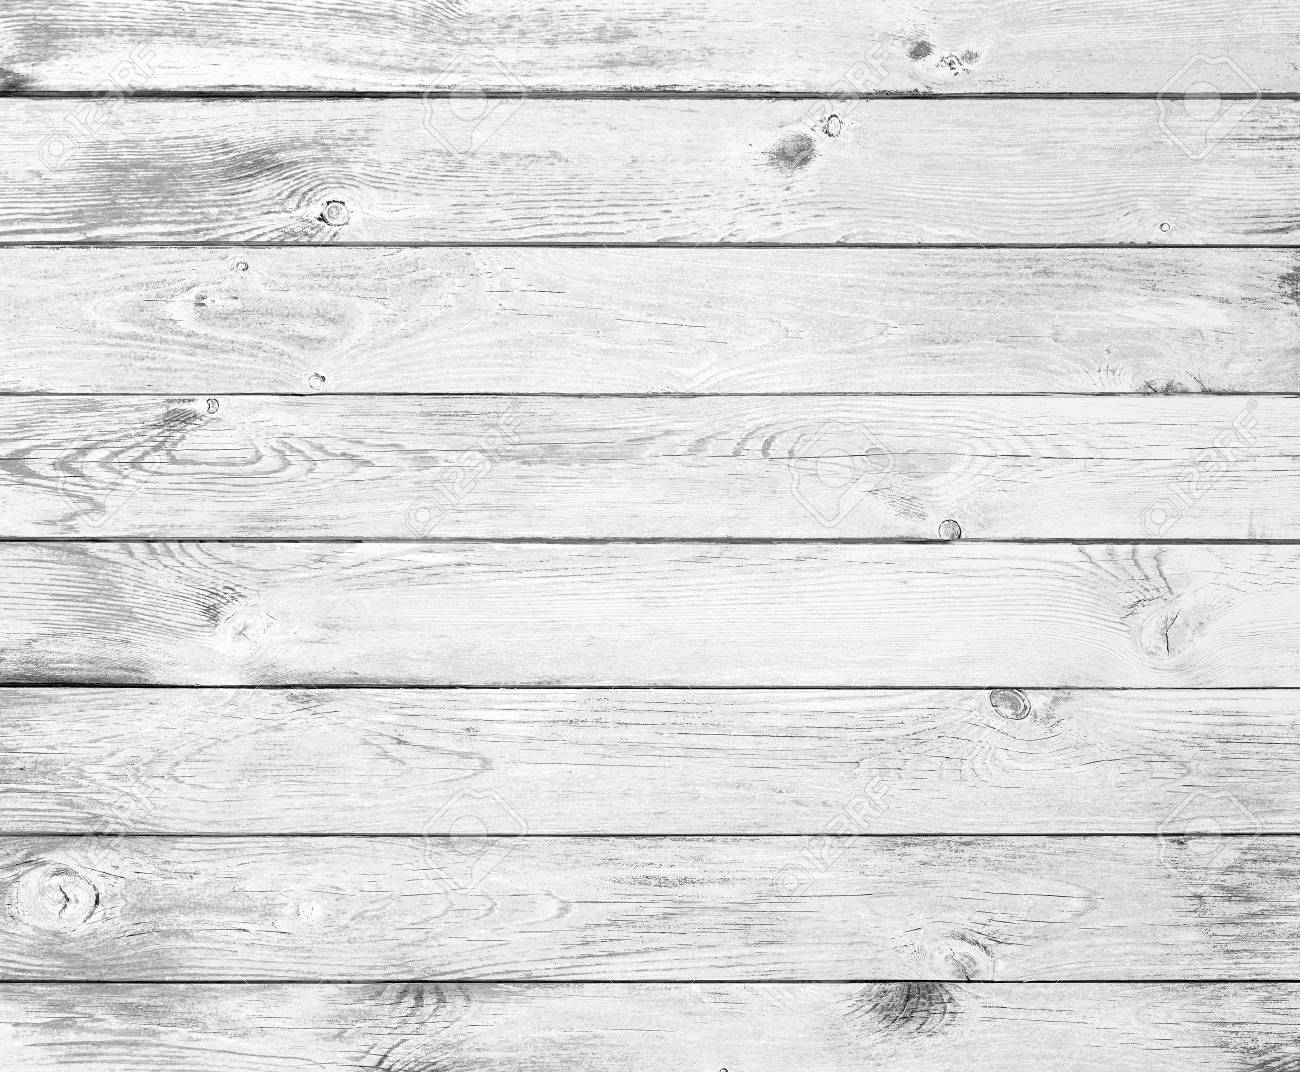 Vintage White Wood Background Stock Photo Picture And Royalty 1300x1072